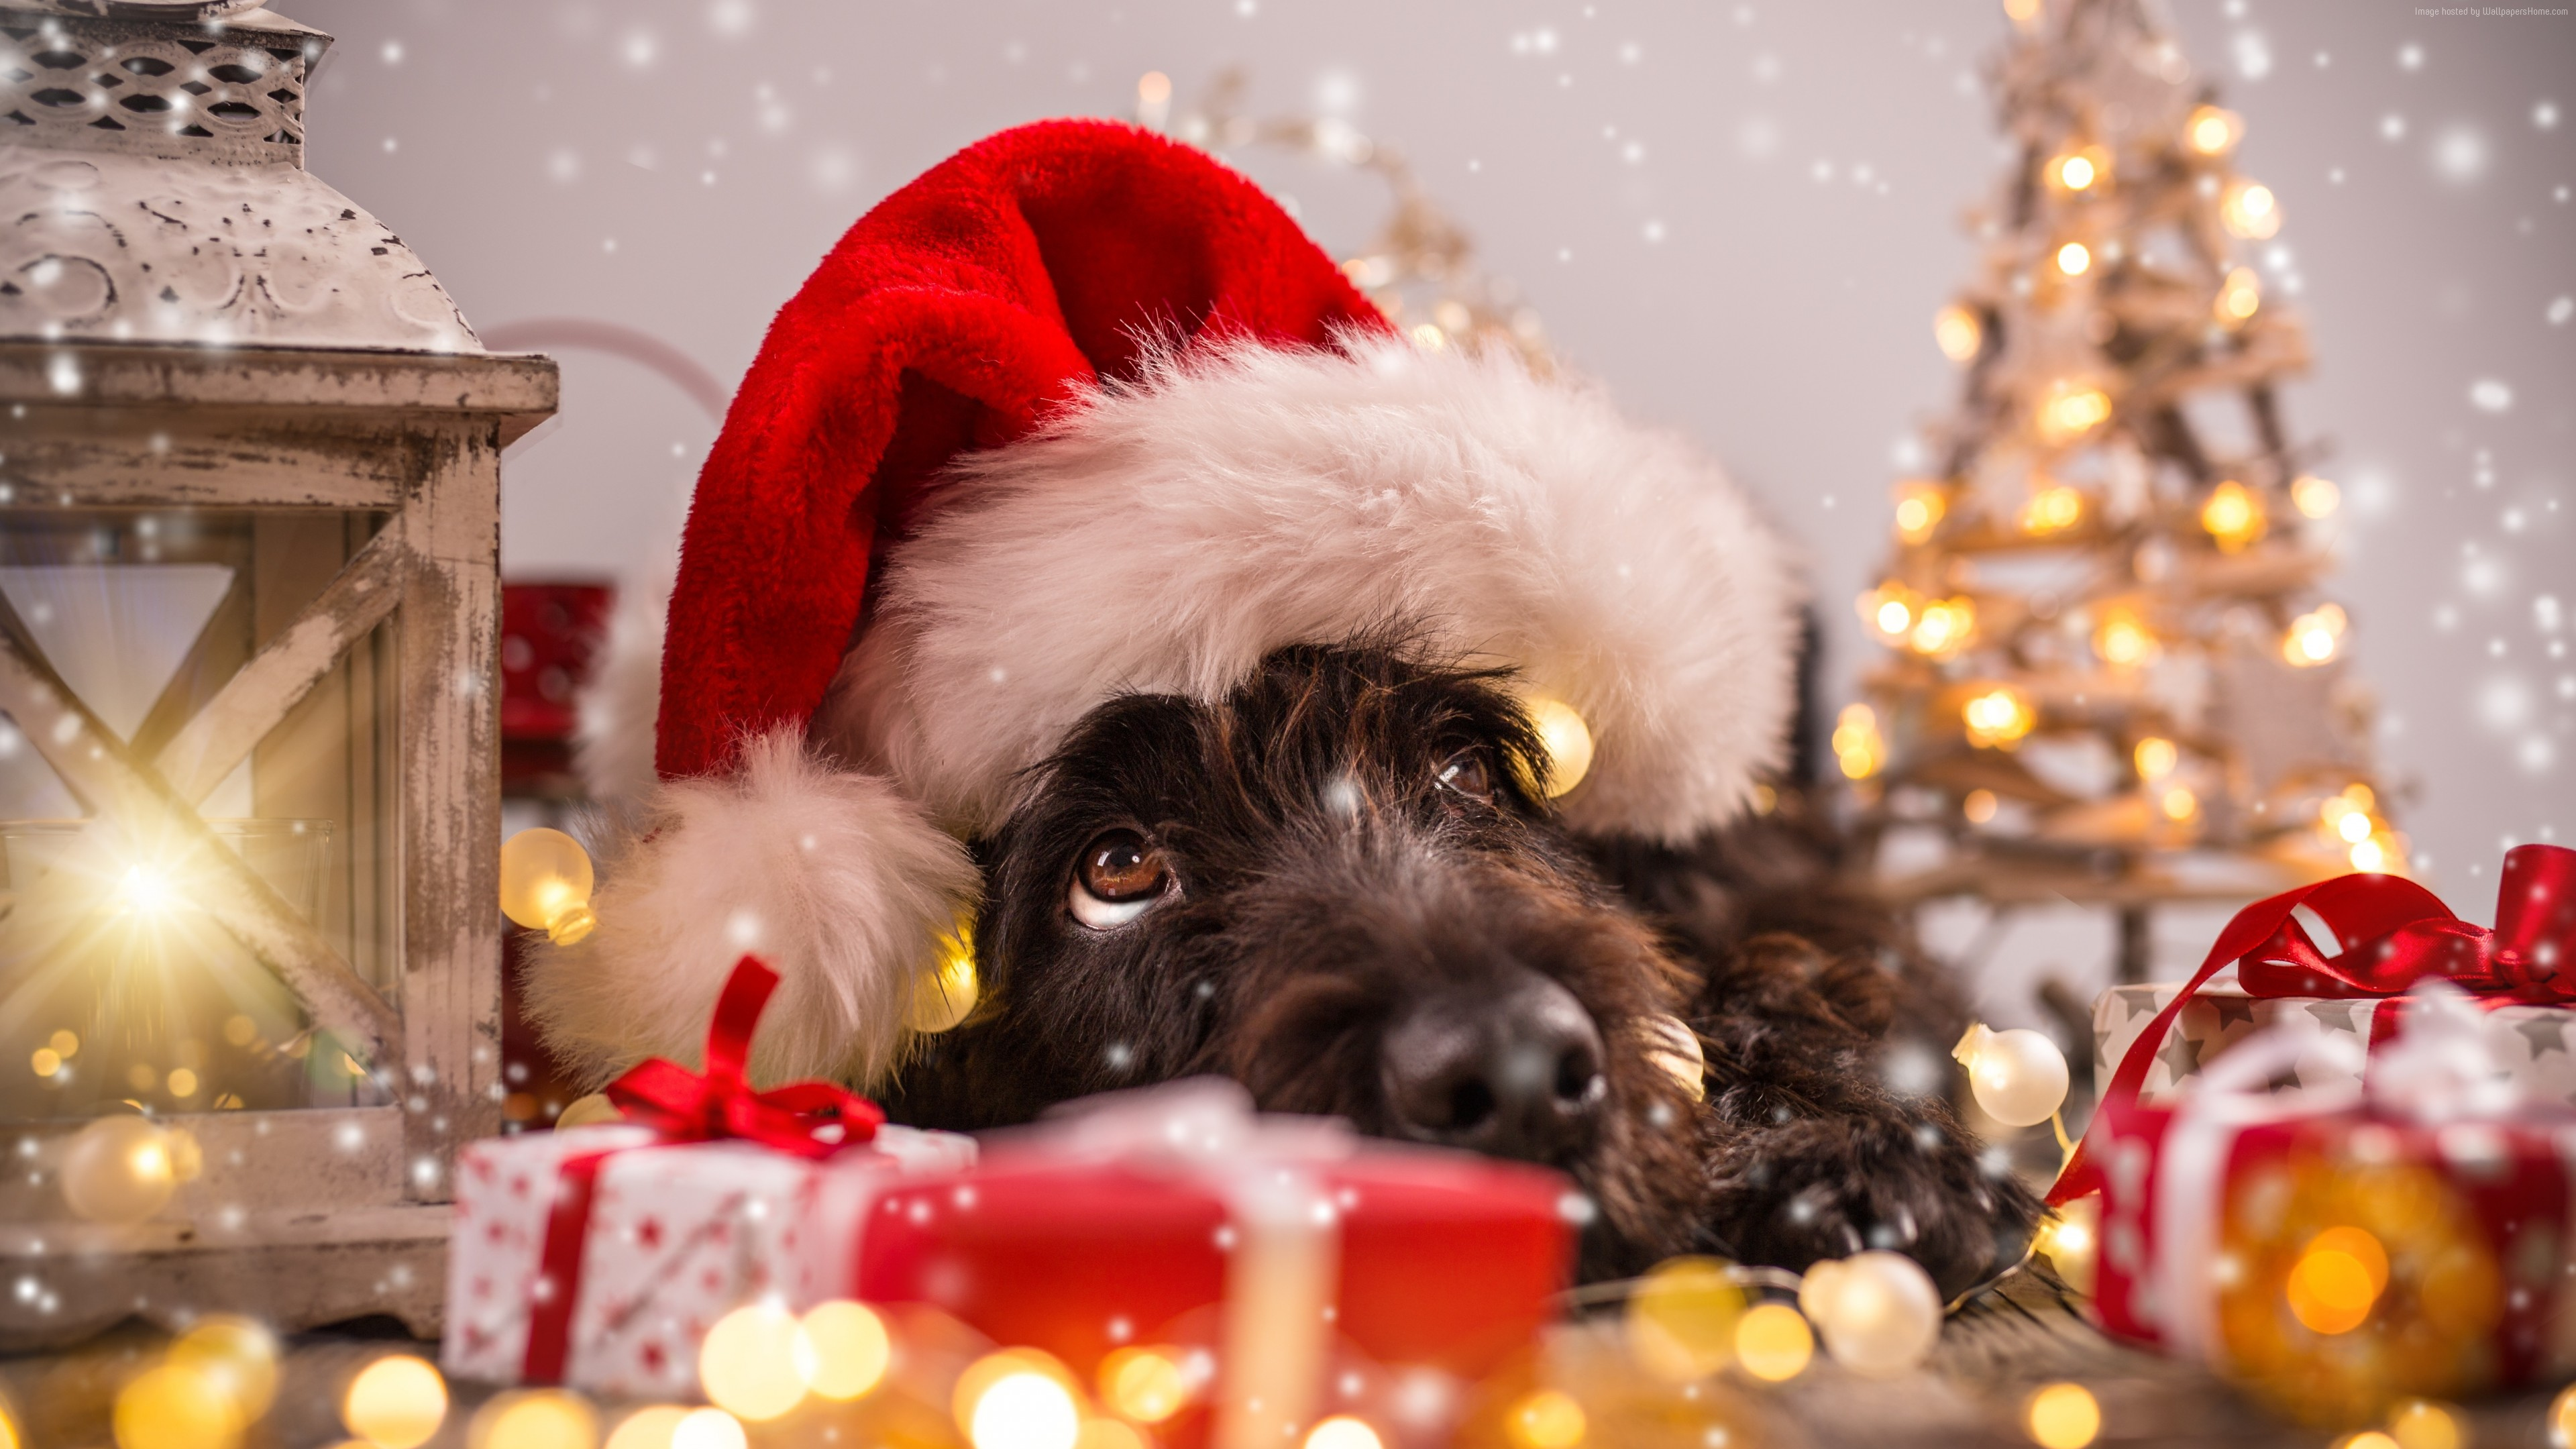 Wallpaper Christmas, New Year, snow, dog, cute animals, 4k, Holidays